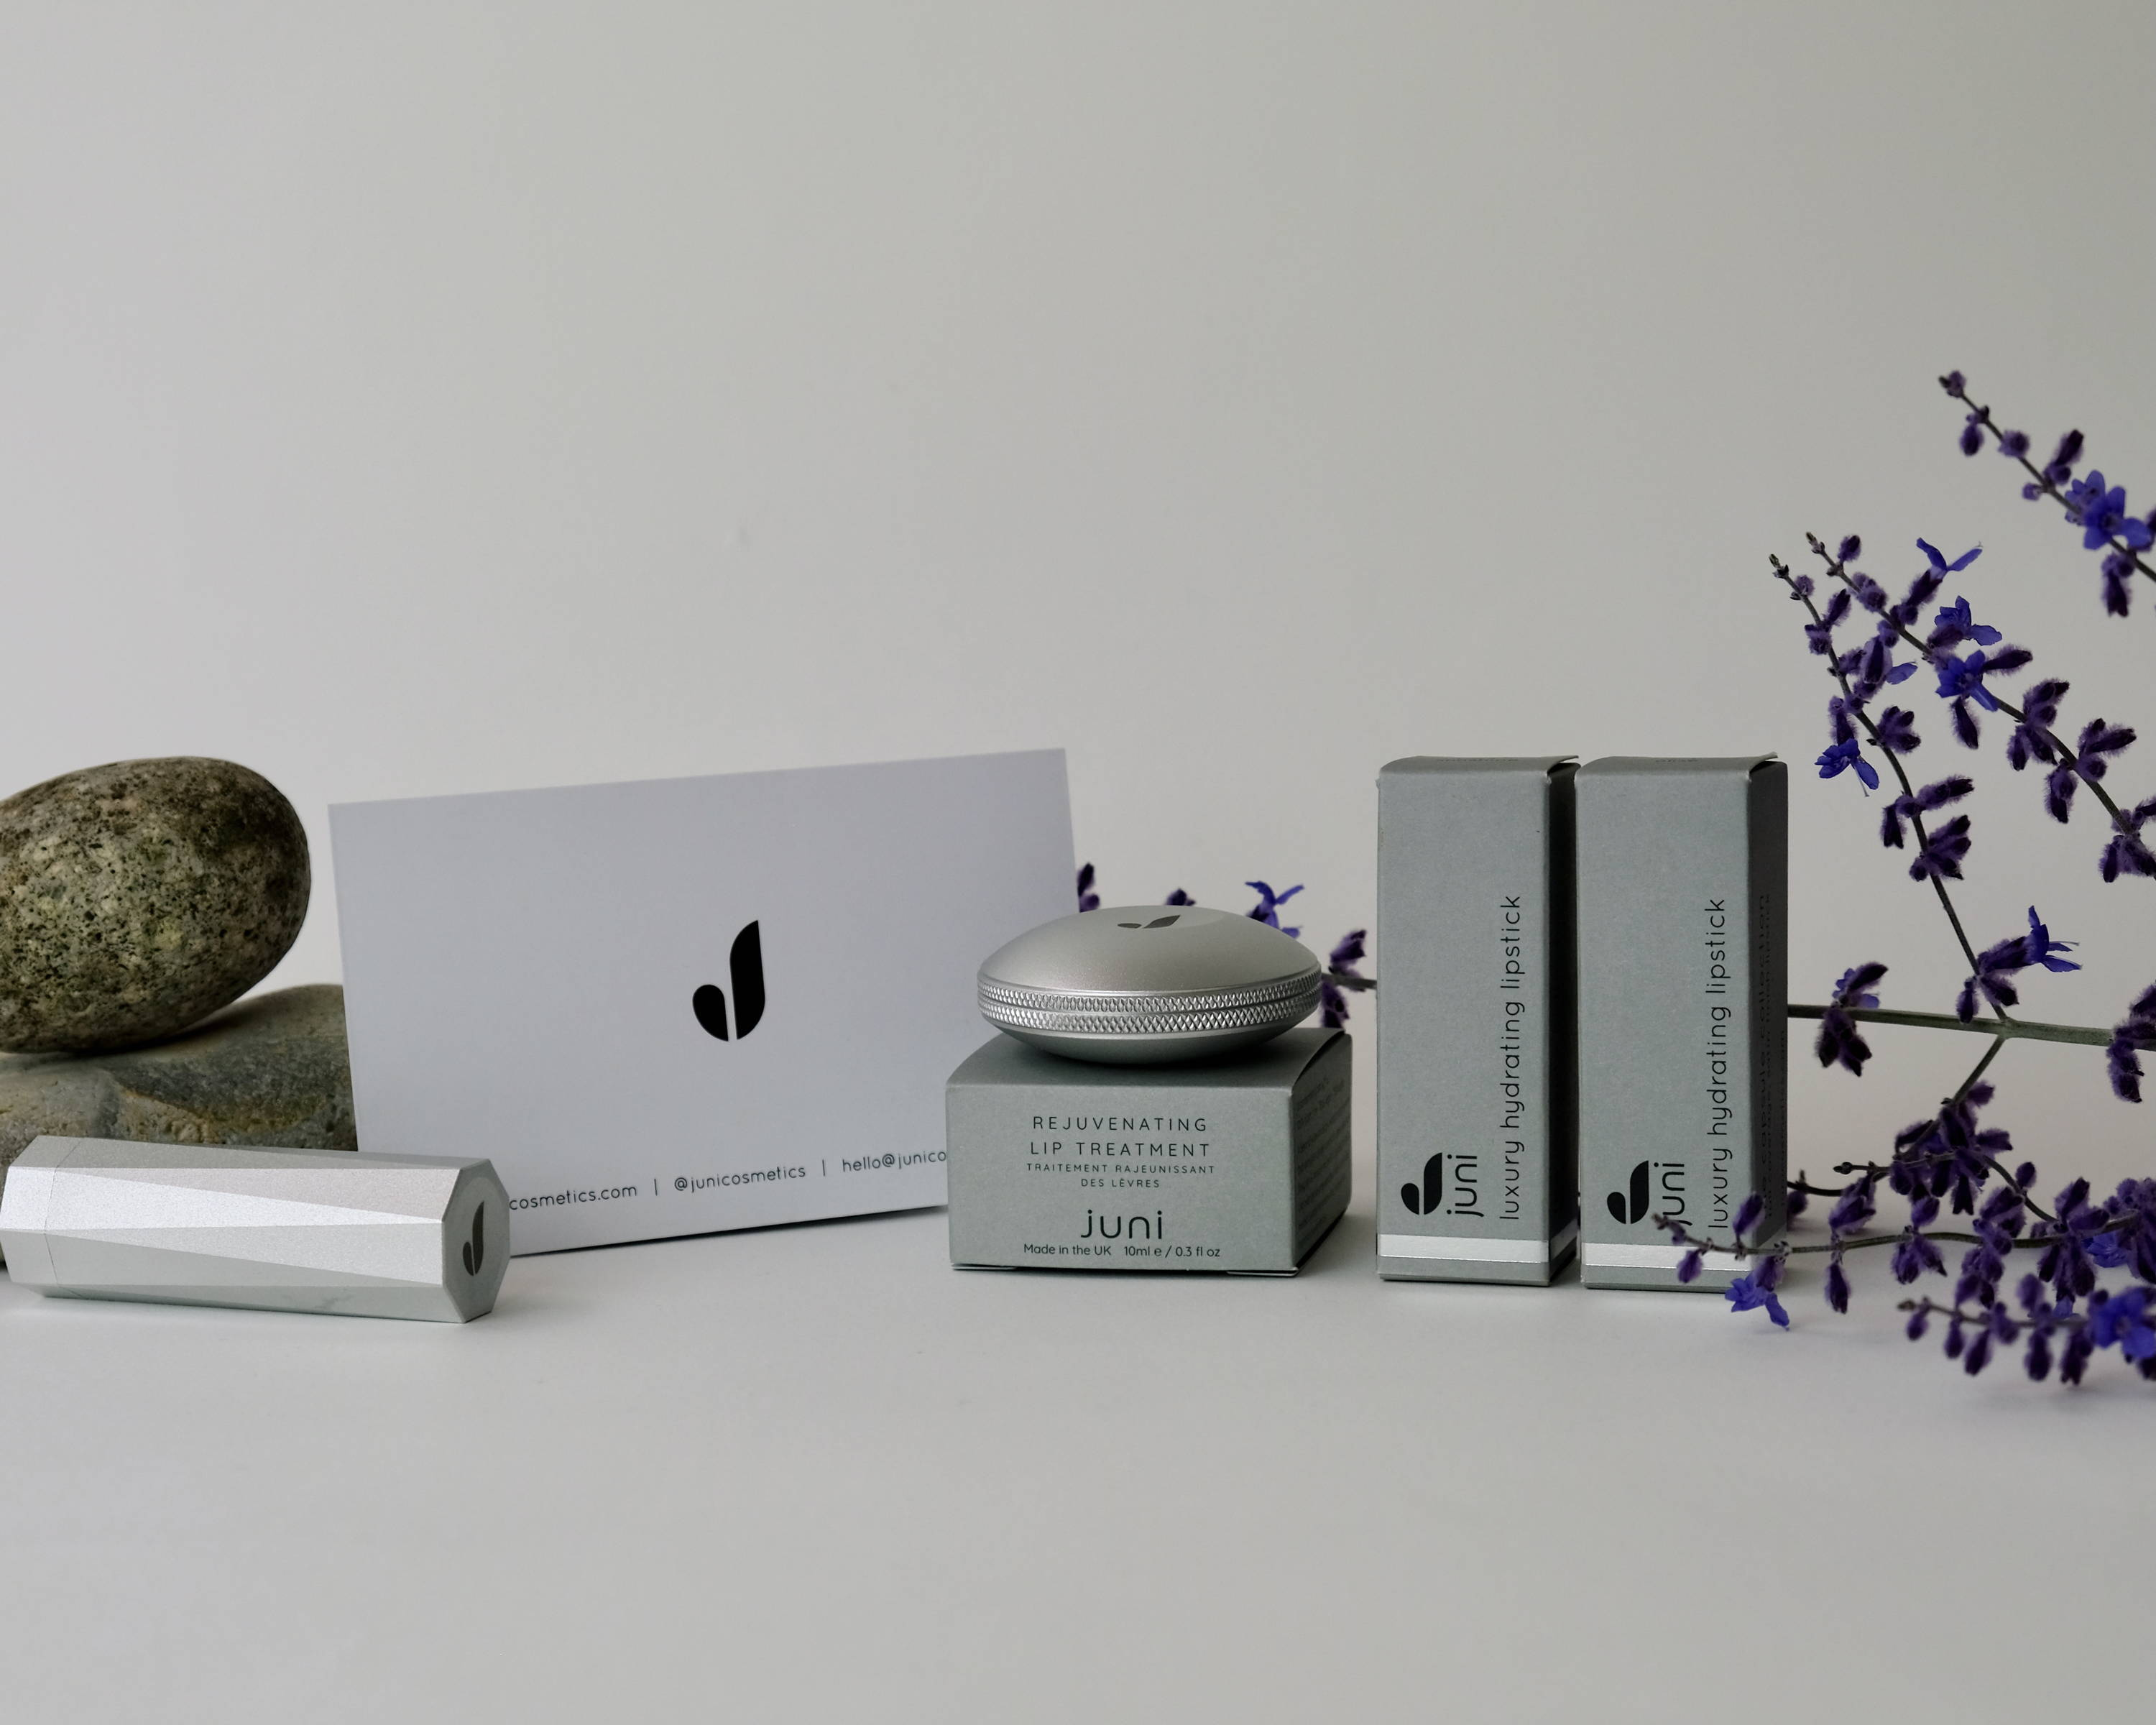 Image of a selection of Juni products displayed with some flowers and decorative rocks